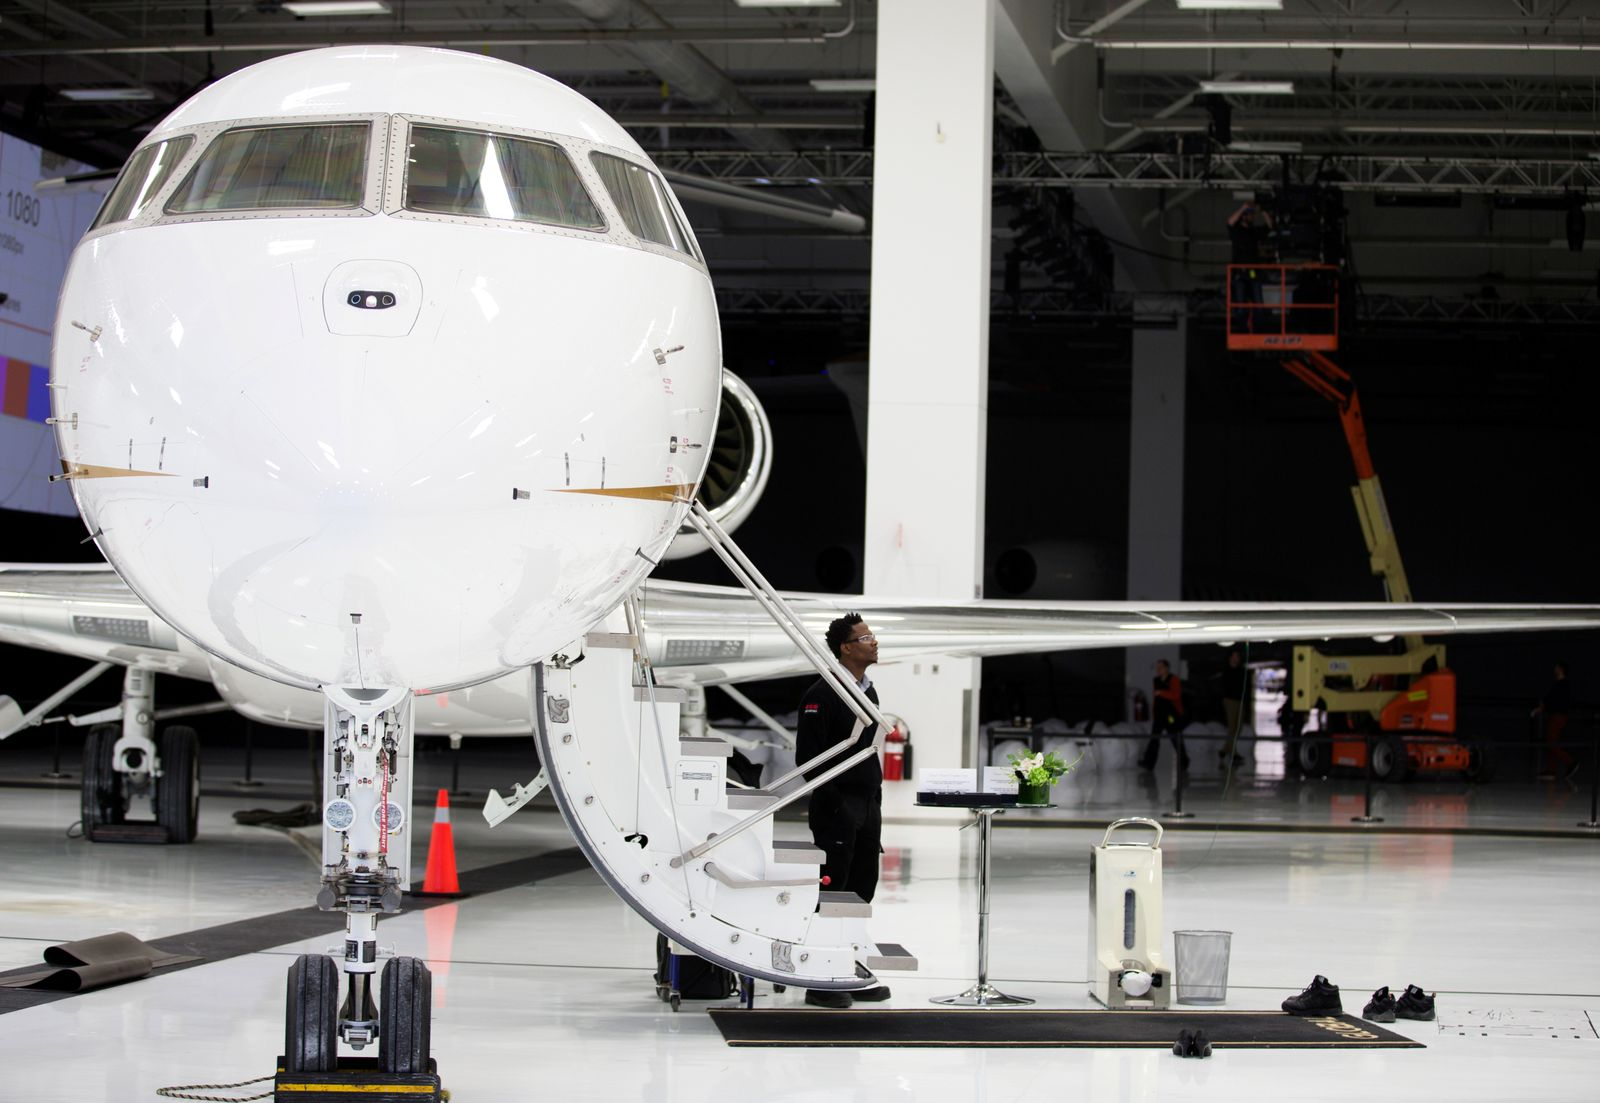 FILE PHOTO: Bombardier's Global 7500, the first business jet to have a queen-sized bed and hot shower, is shown during a media tour in Montreal